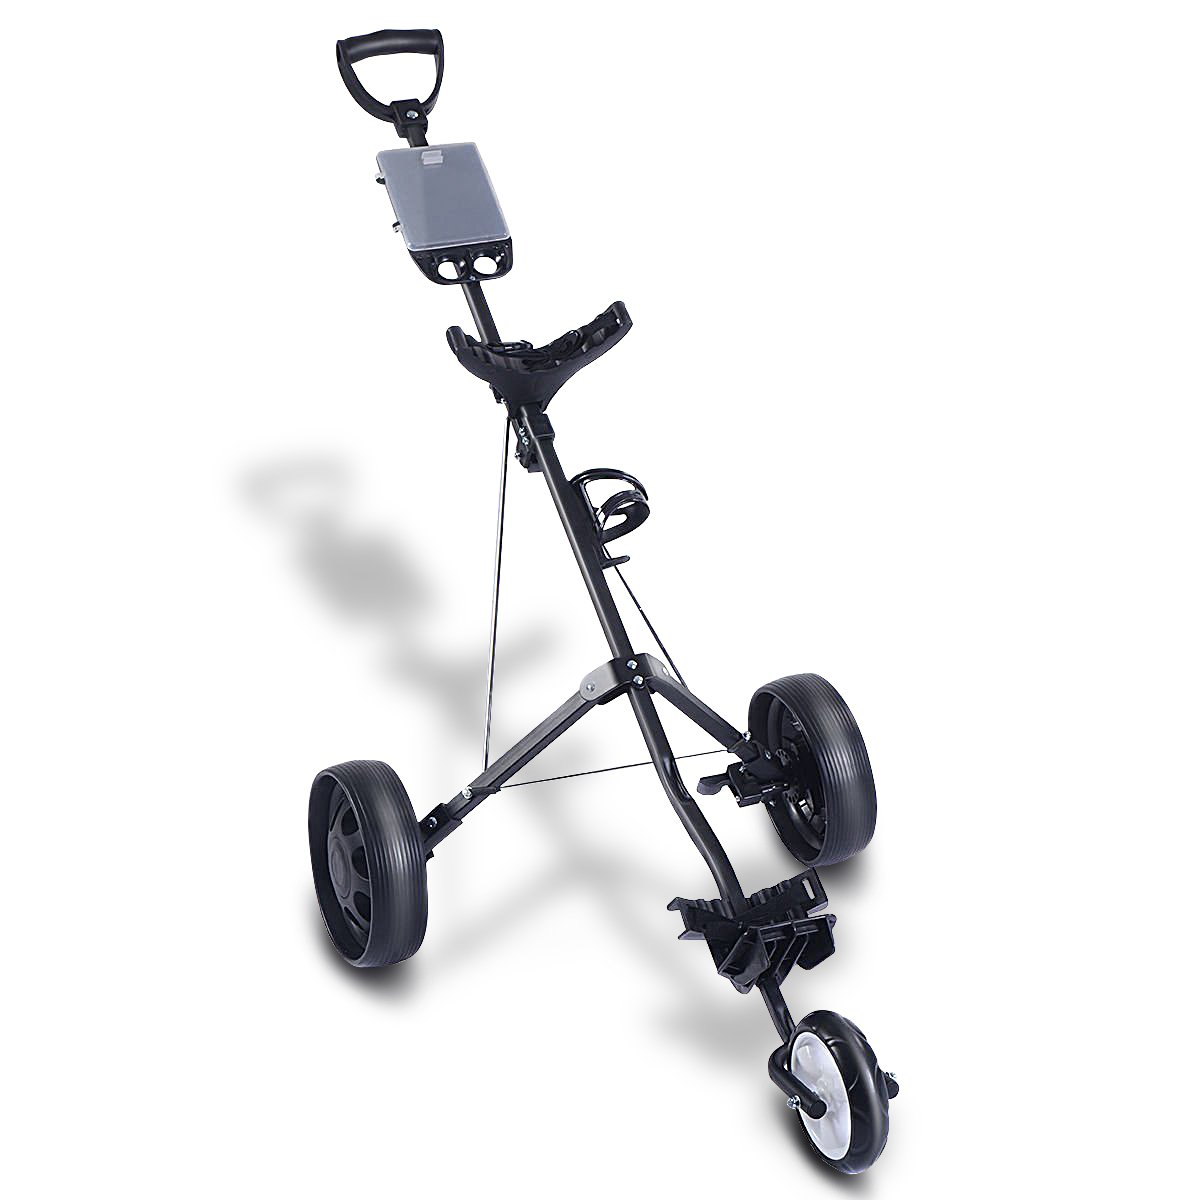 Tangkula Folding Pull Push Golf Cart 3 Wheel Trolley Swivel with Cup Holder